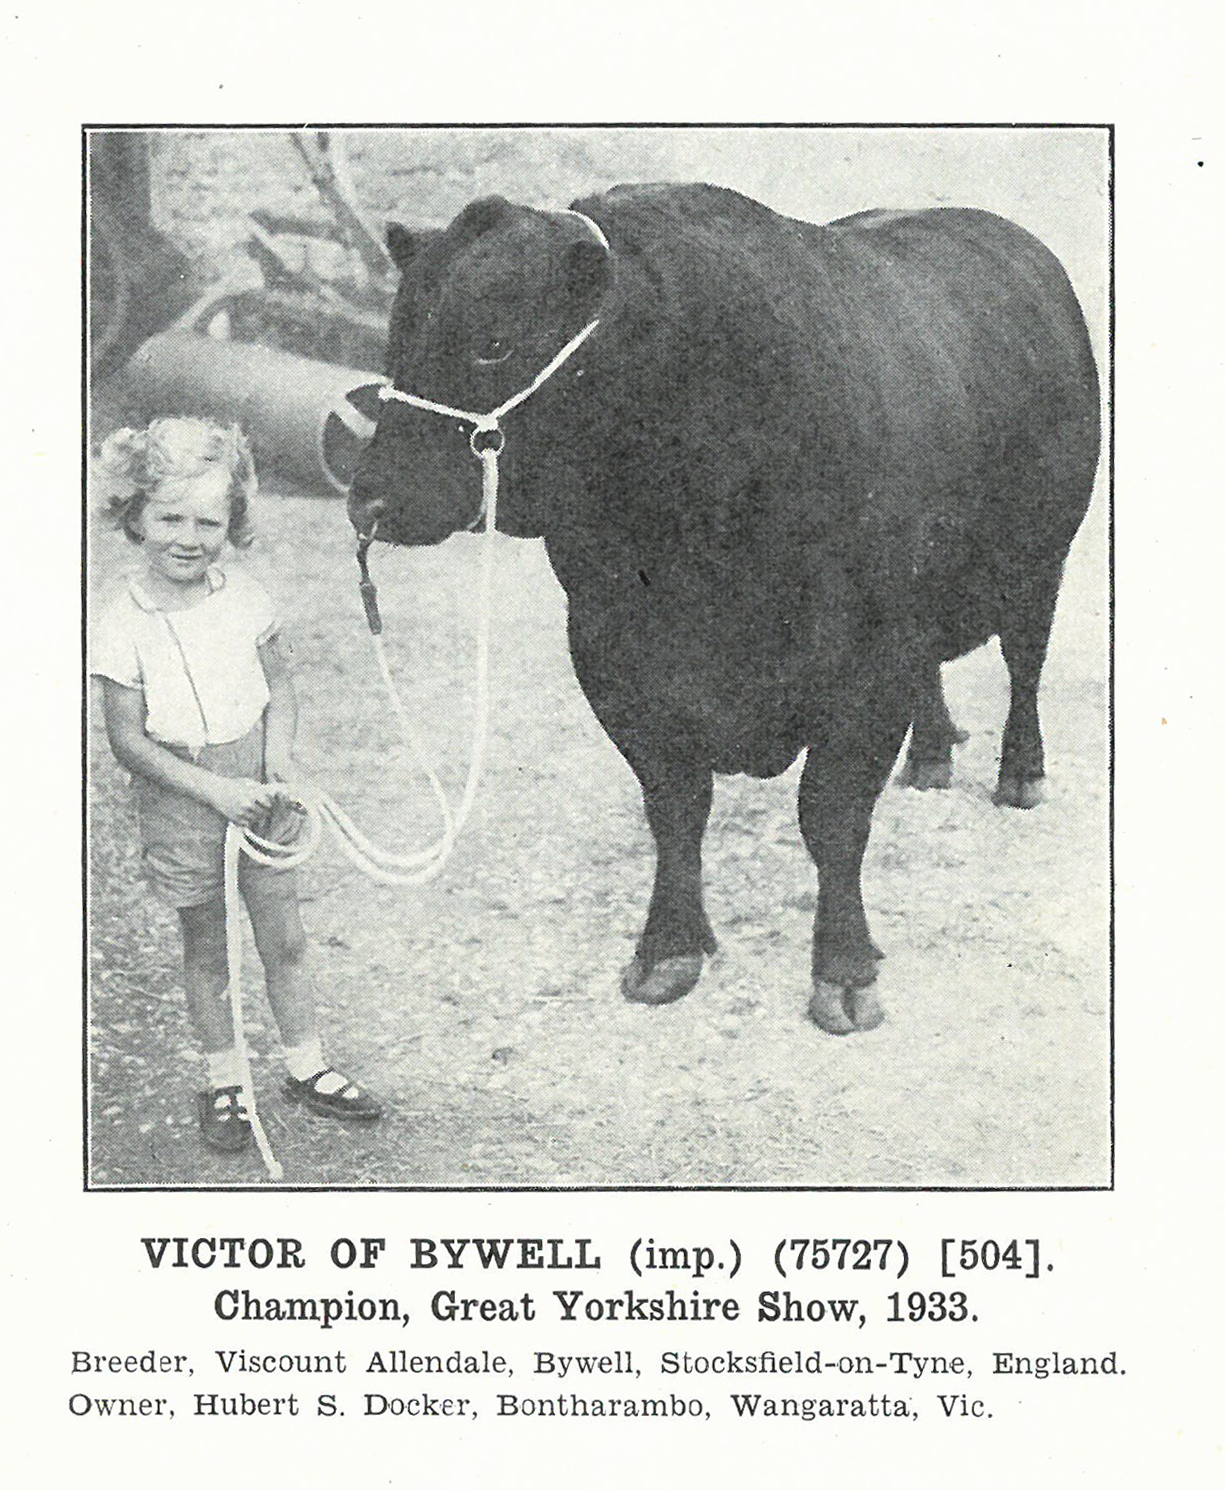 Victor of Bywell